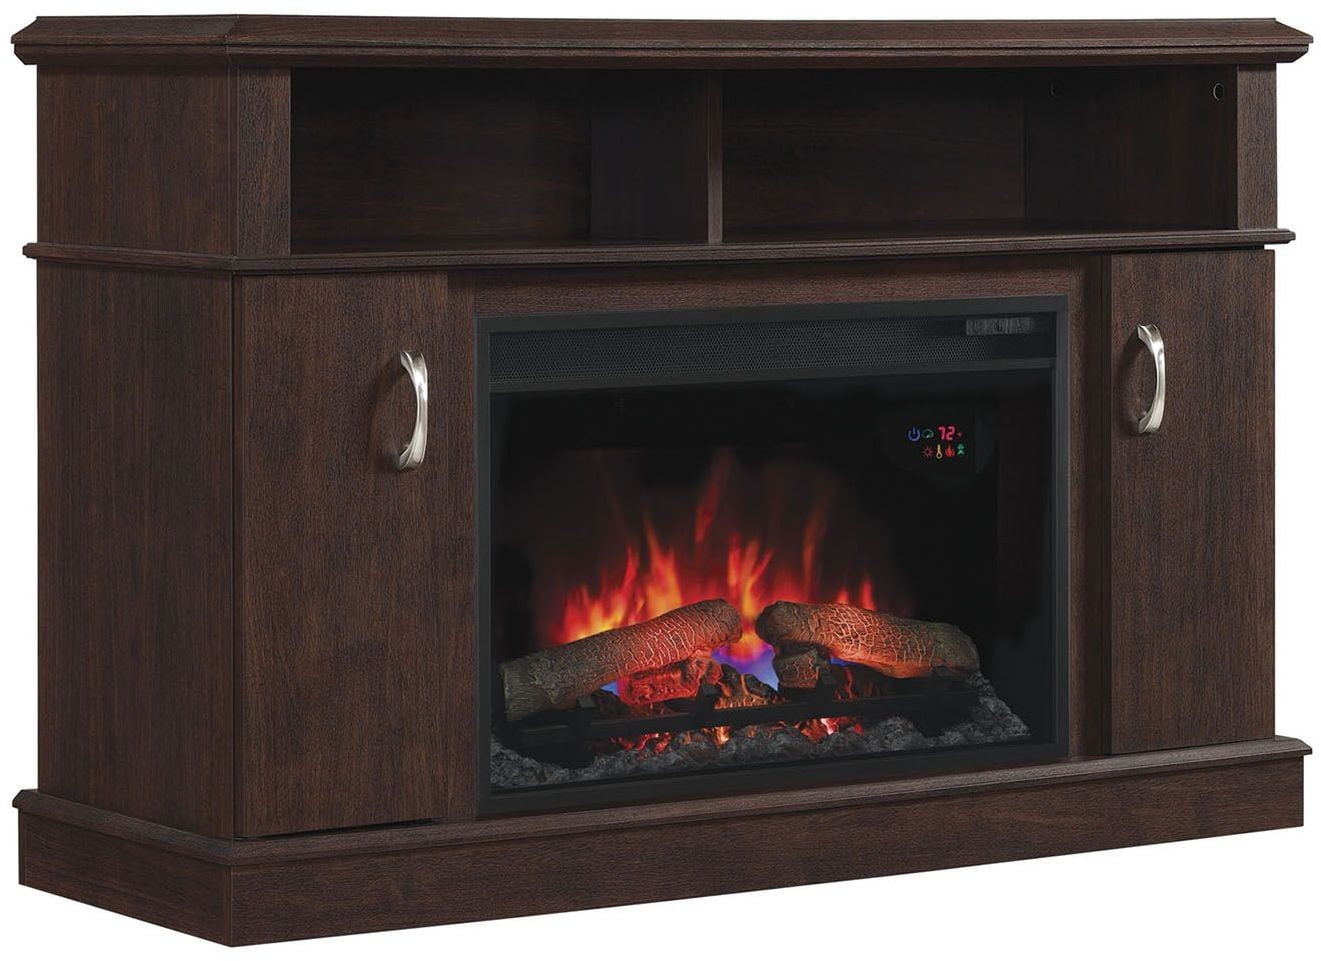 Classicflame Midnight Cherry Dwell Tv Stand With 26 Electric Fireplace From Twin Star